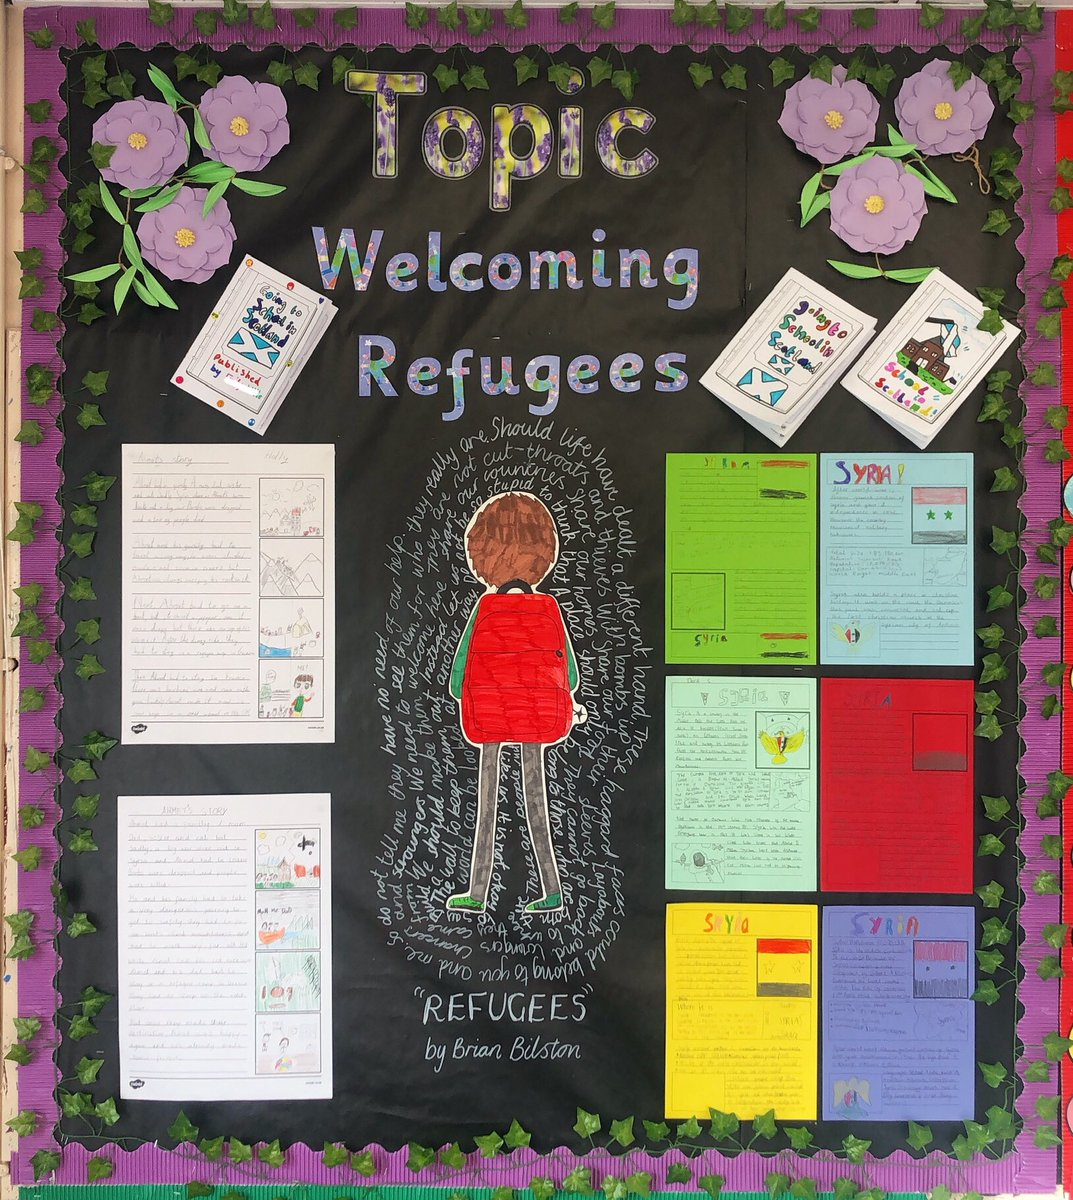 P6/7 made 'Refugee Welcome Booklets' for children starting Scottish schools, wrote fact files all about Syria and retold Ahmet's refugee story from their class novel to create this effective display. They have also created some effective artwork over this term too. Well done! https://t.co/KUeDrNRp2K